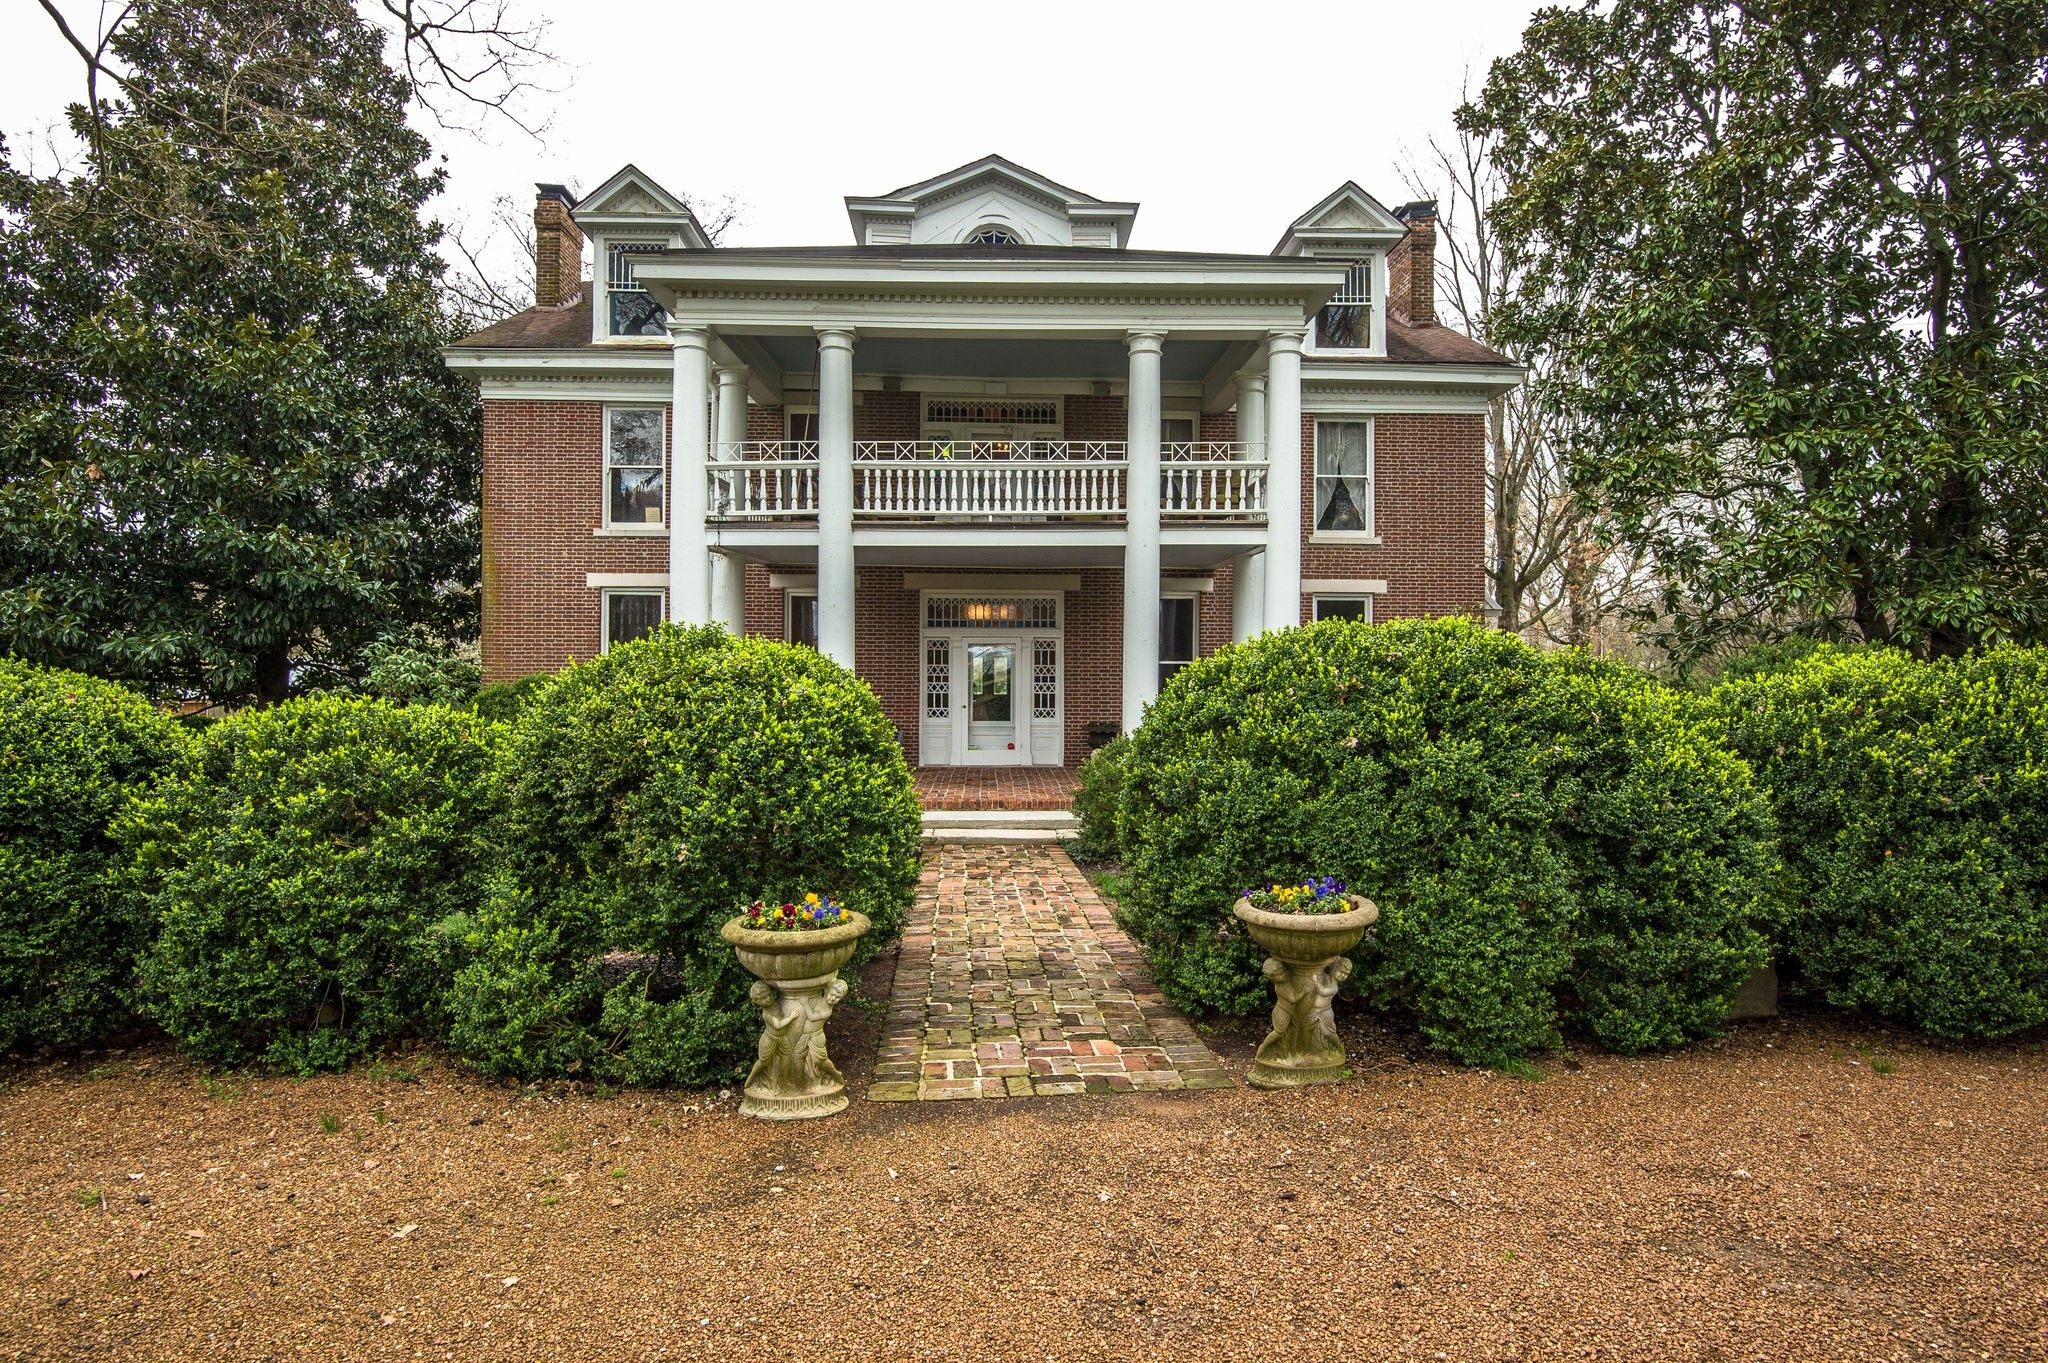 4683 Columbia Pike Property Photo - Thompsons Station, TN real estate listing